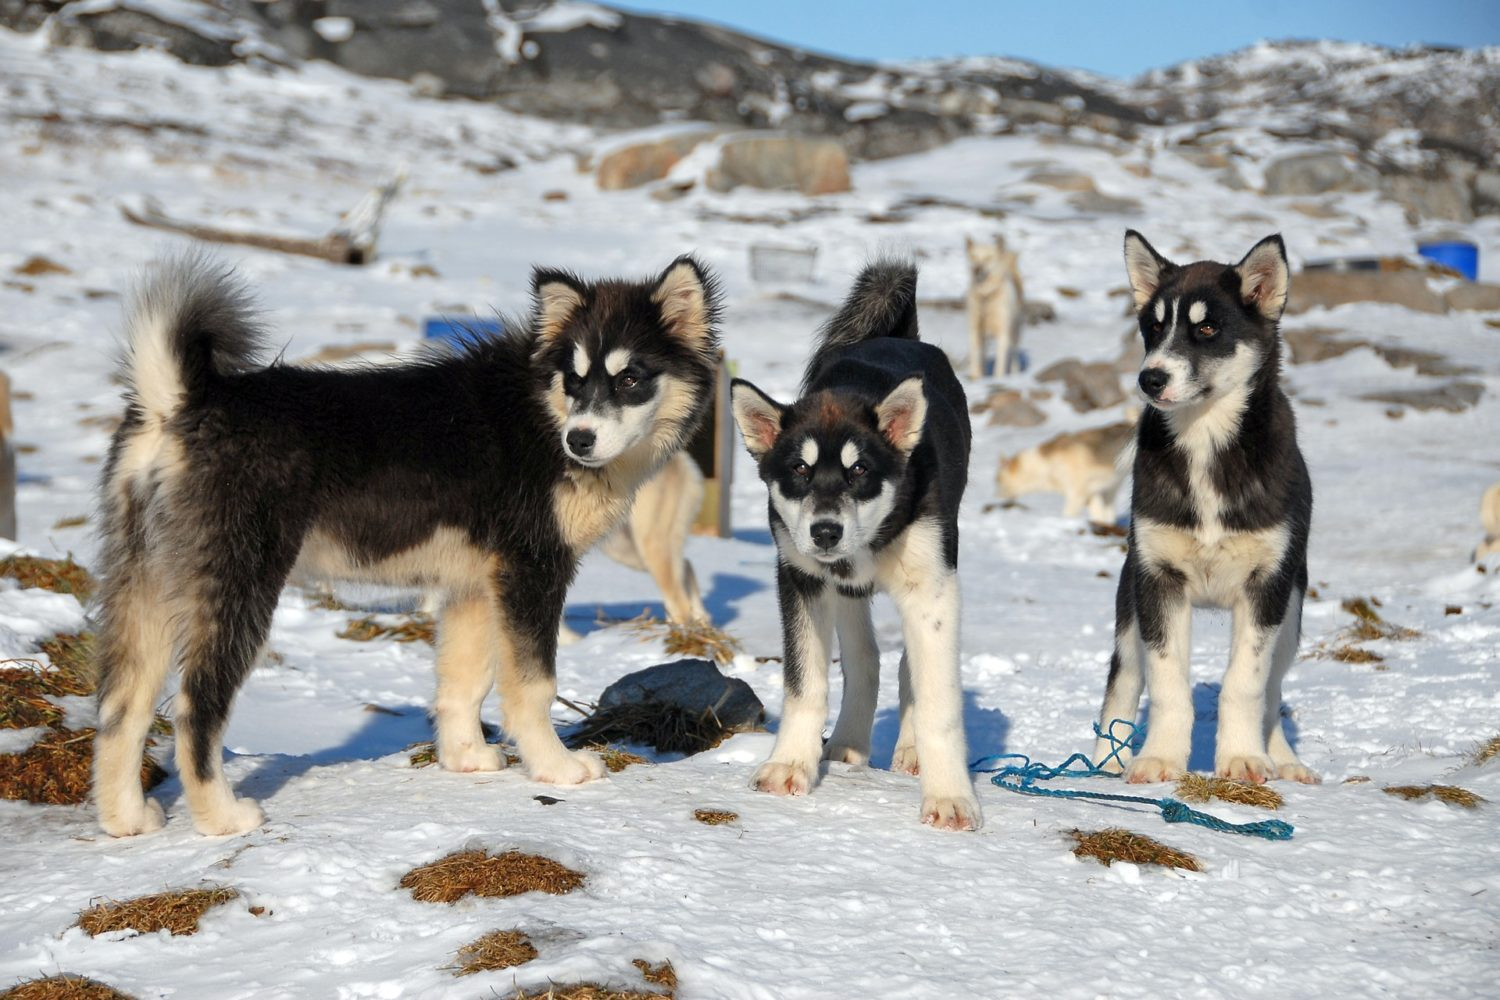 Sled dog puppies in Greenland!